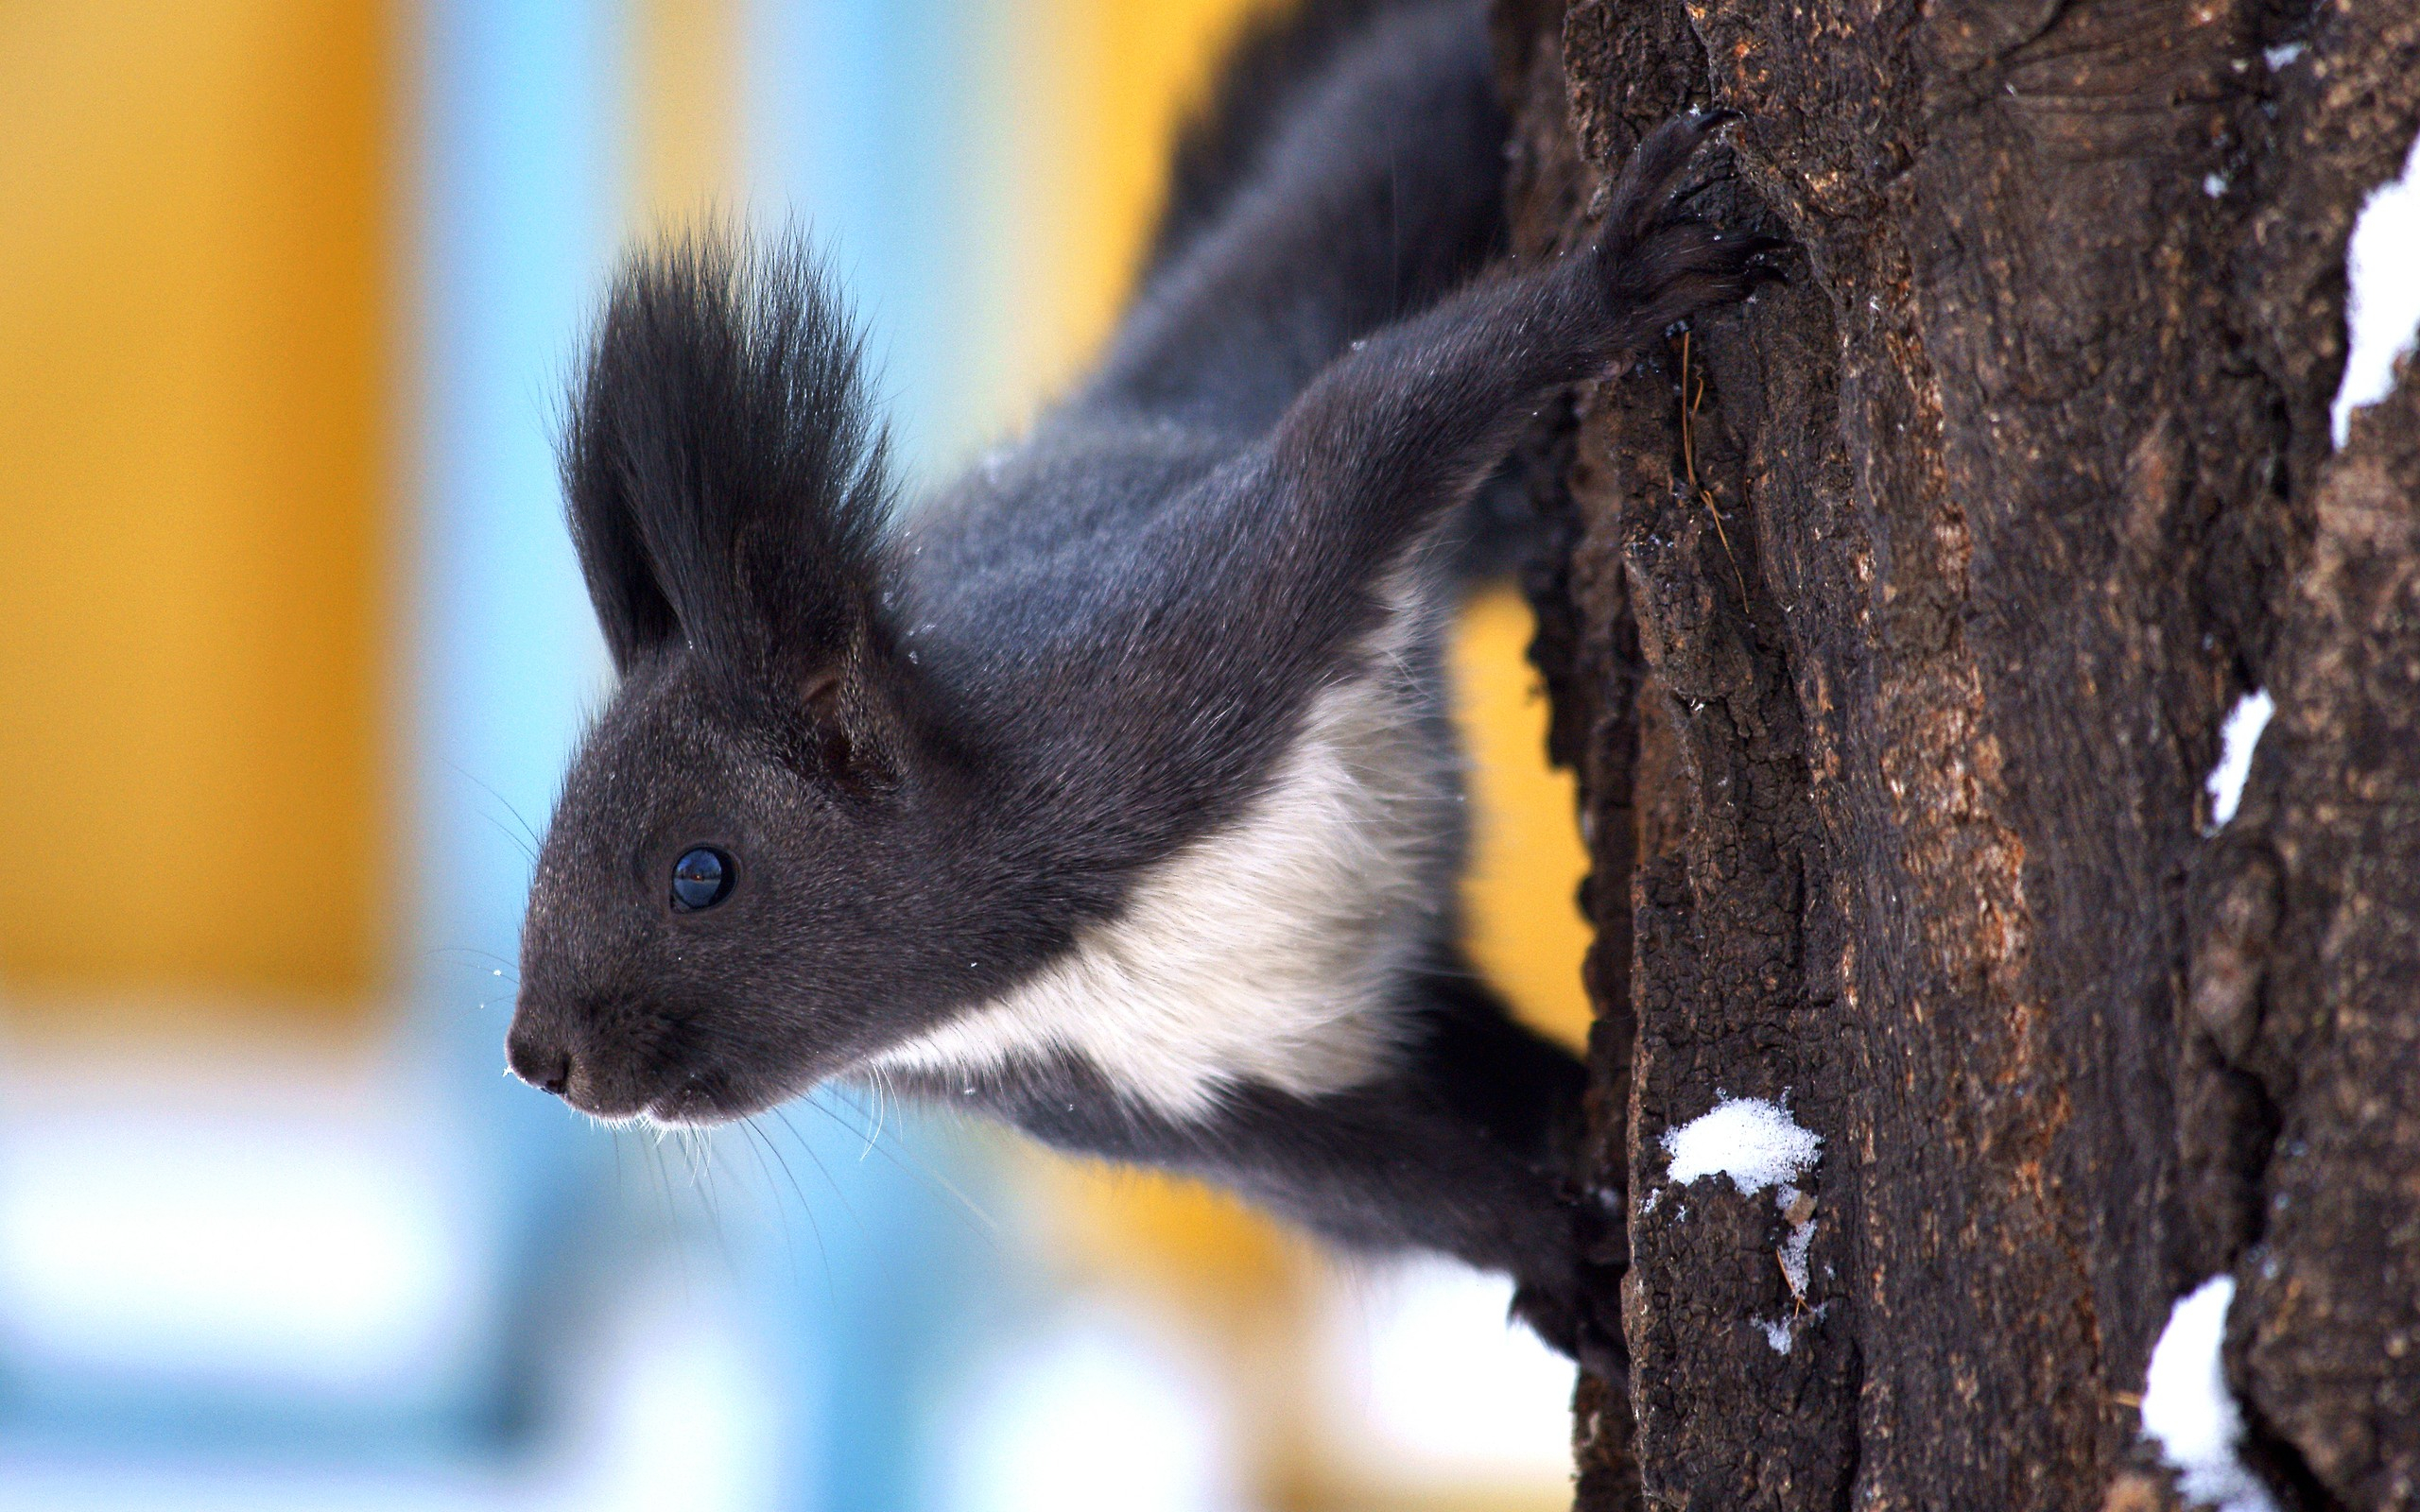 34193 download wallpaper Animals, Squirrel screensavers and pictures for free